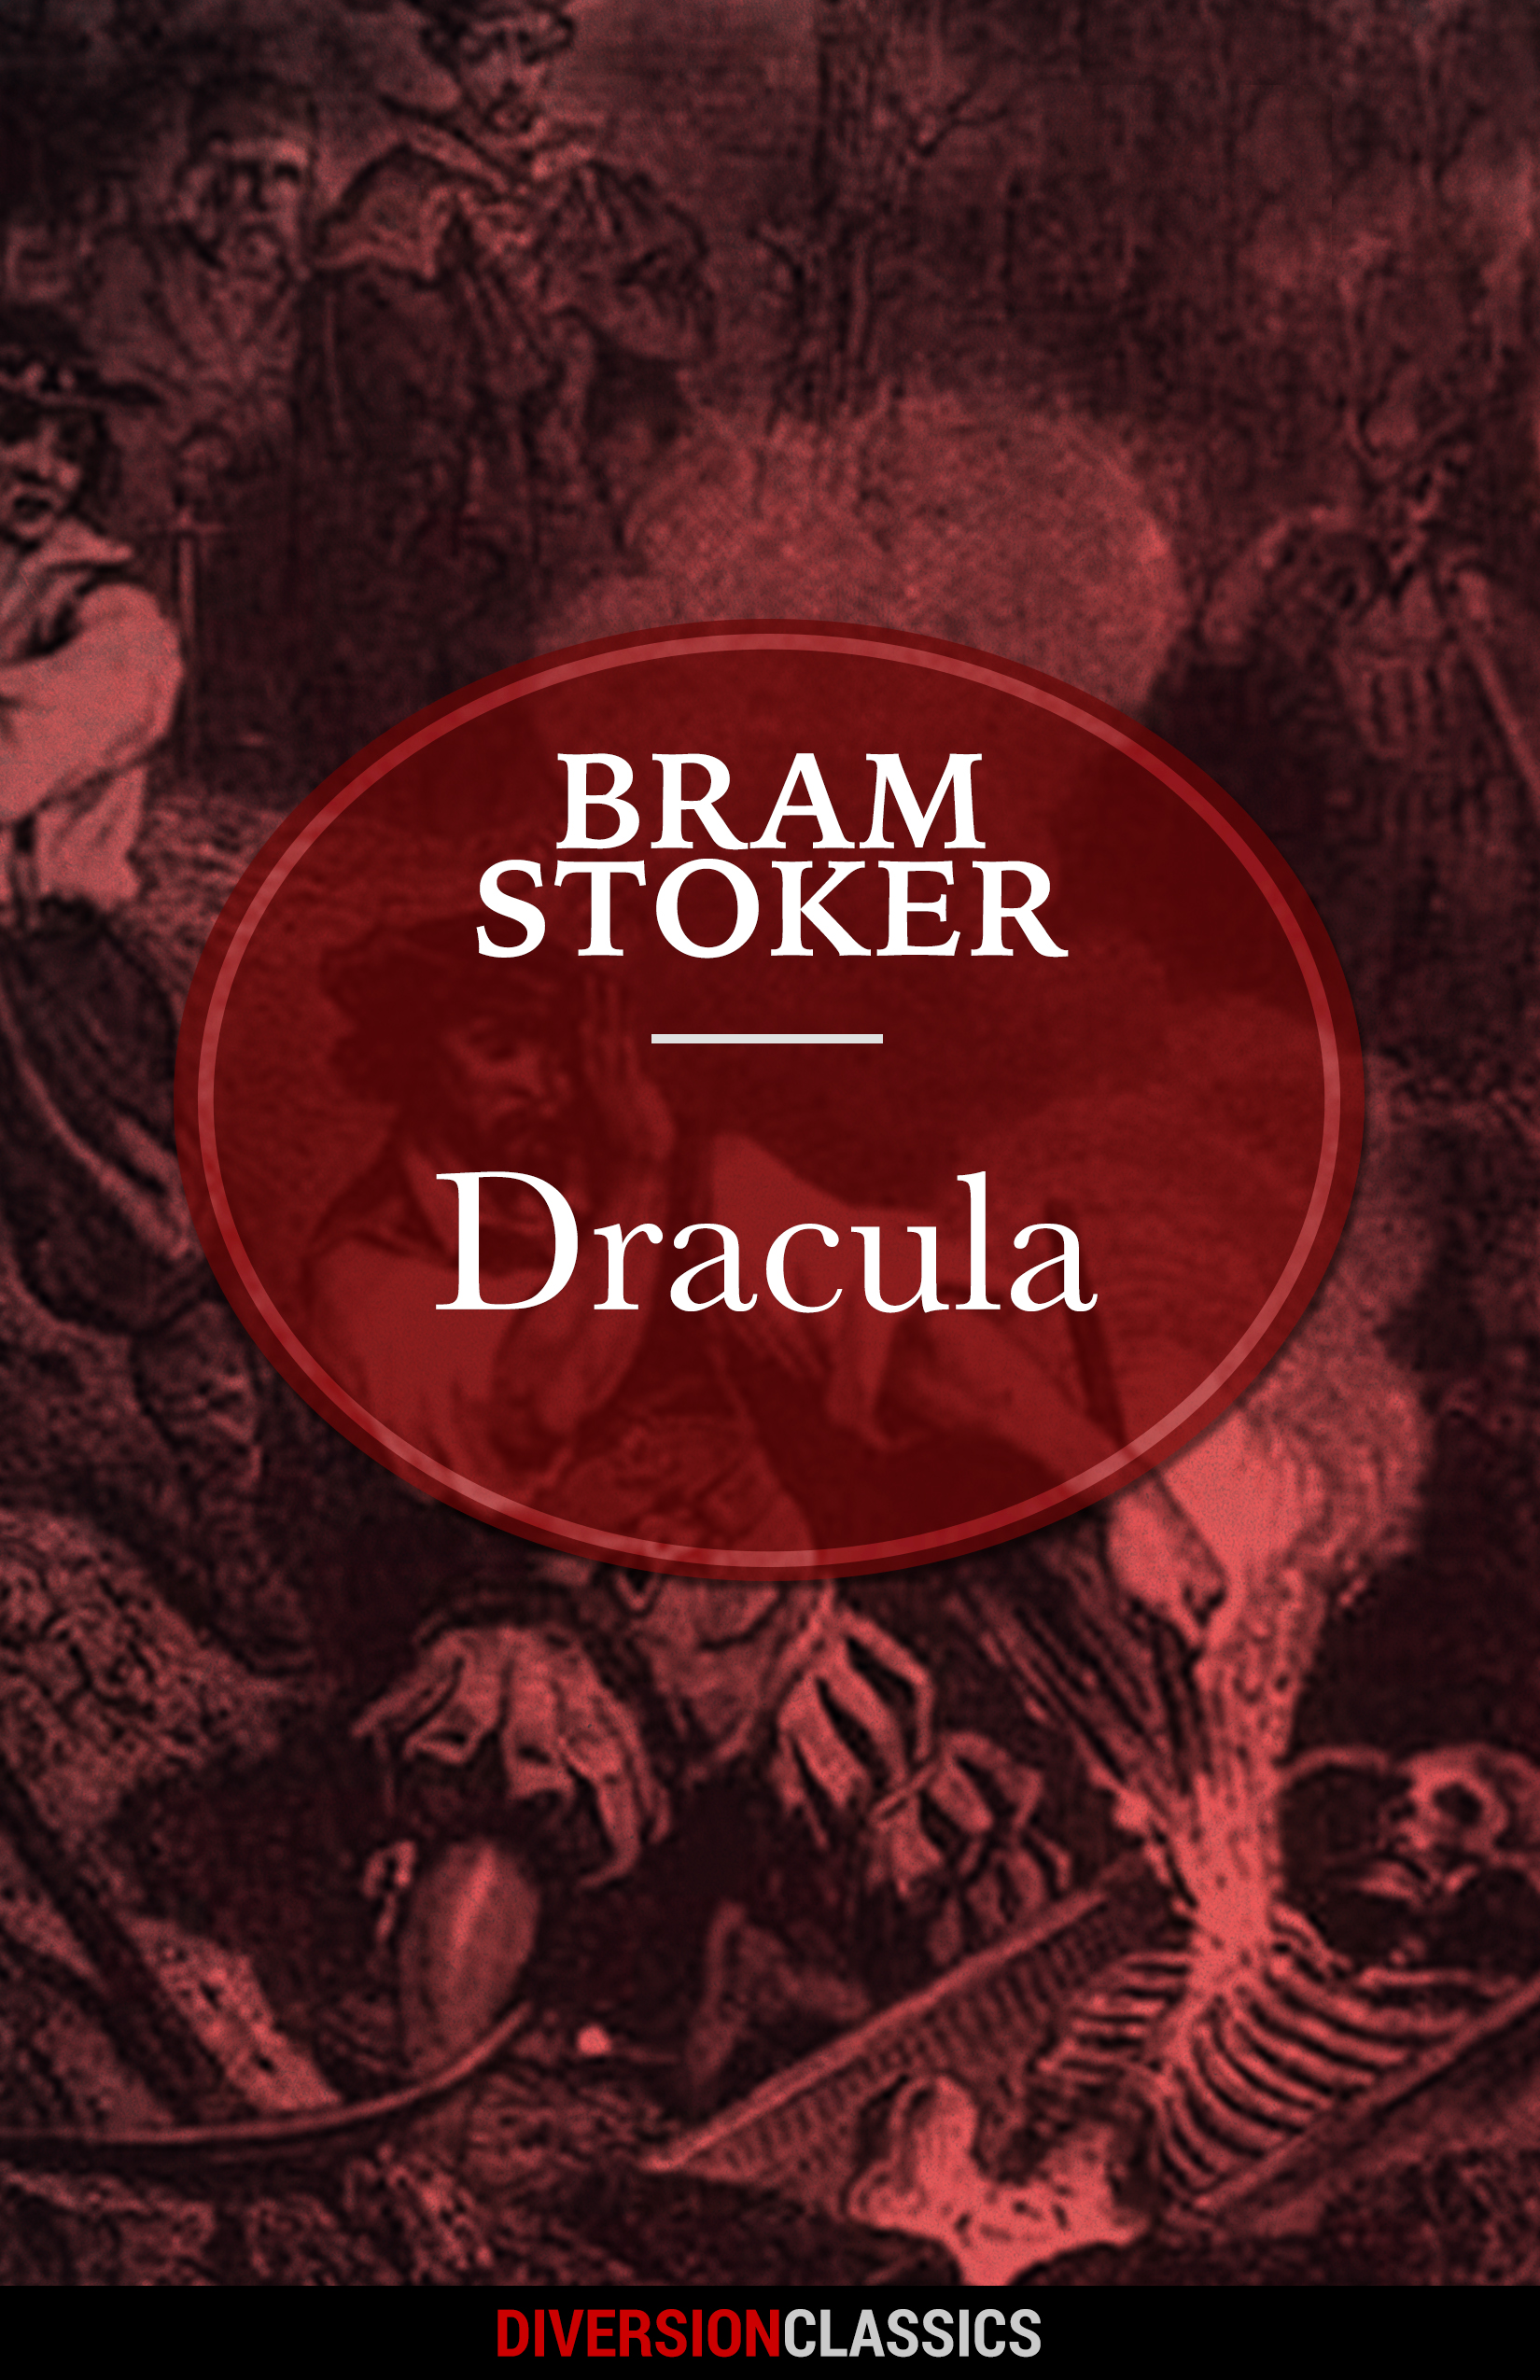 dracula research paper Vlad dracula research paper 1672 words | 7 pages vlad dracula was born in the winter of 1431 in sighisoura,transylvania vlad's father who is vlad ii came from a family of princes from the state of wallacia.